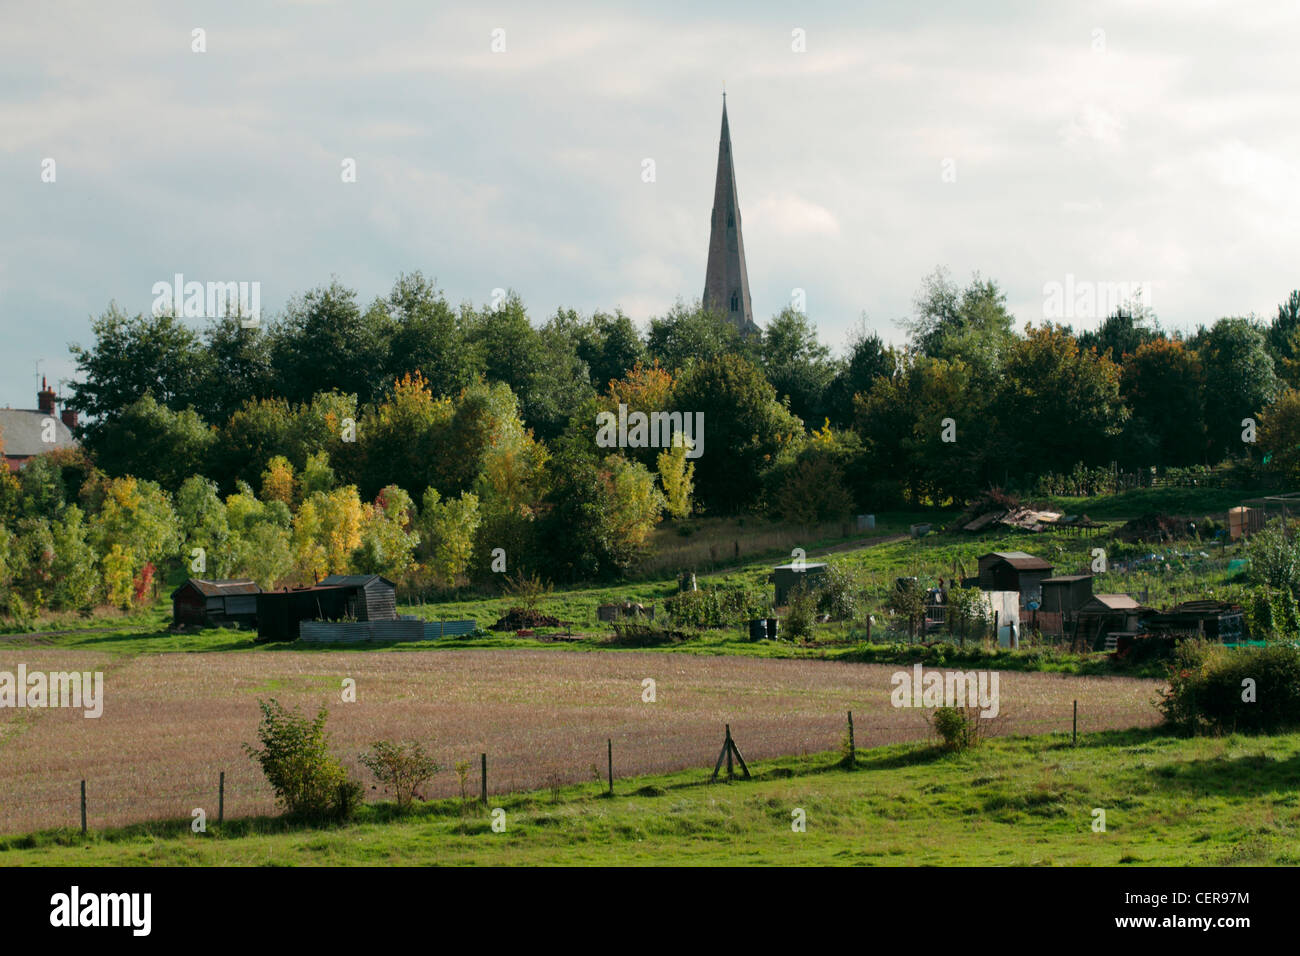 Fields, allotments and St Katharine's church spire in the village of Irchester. - Stock Image